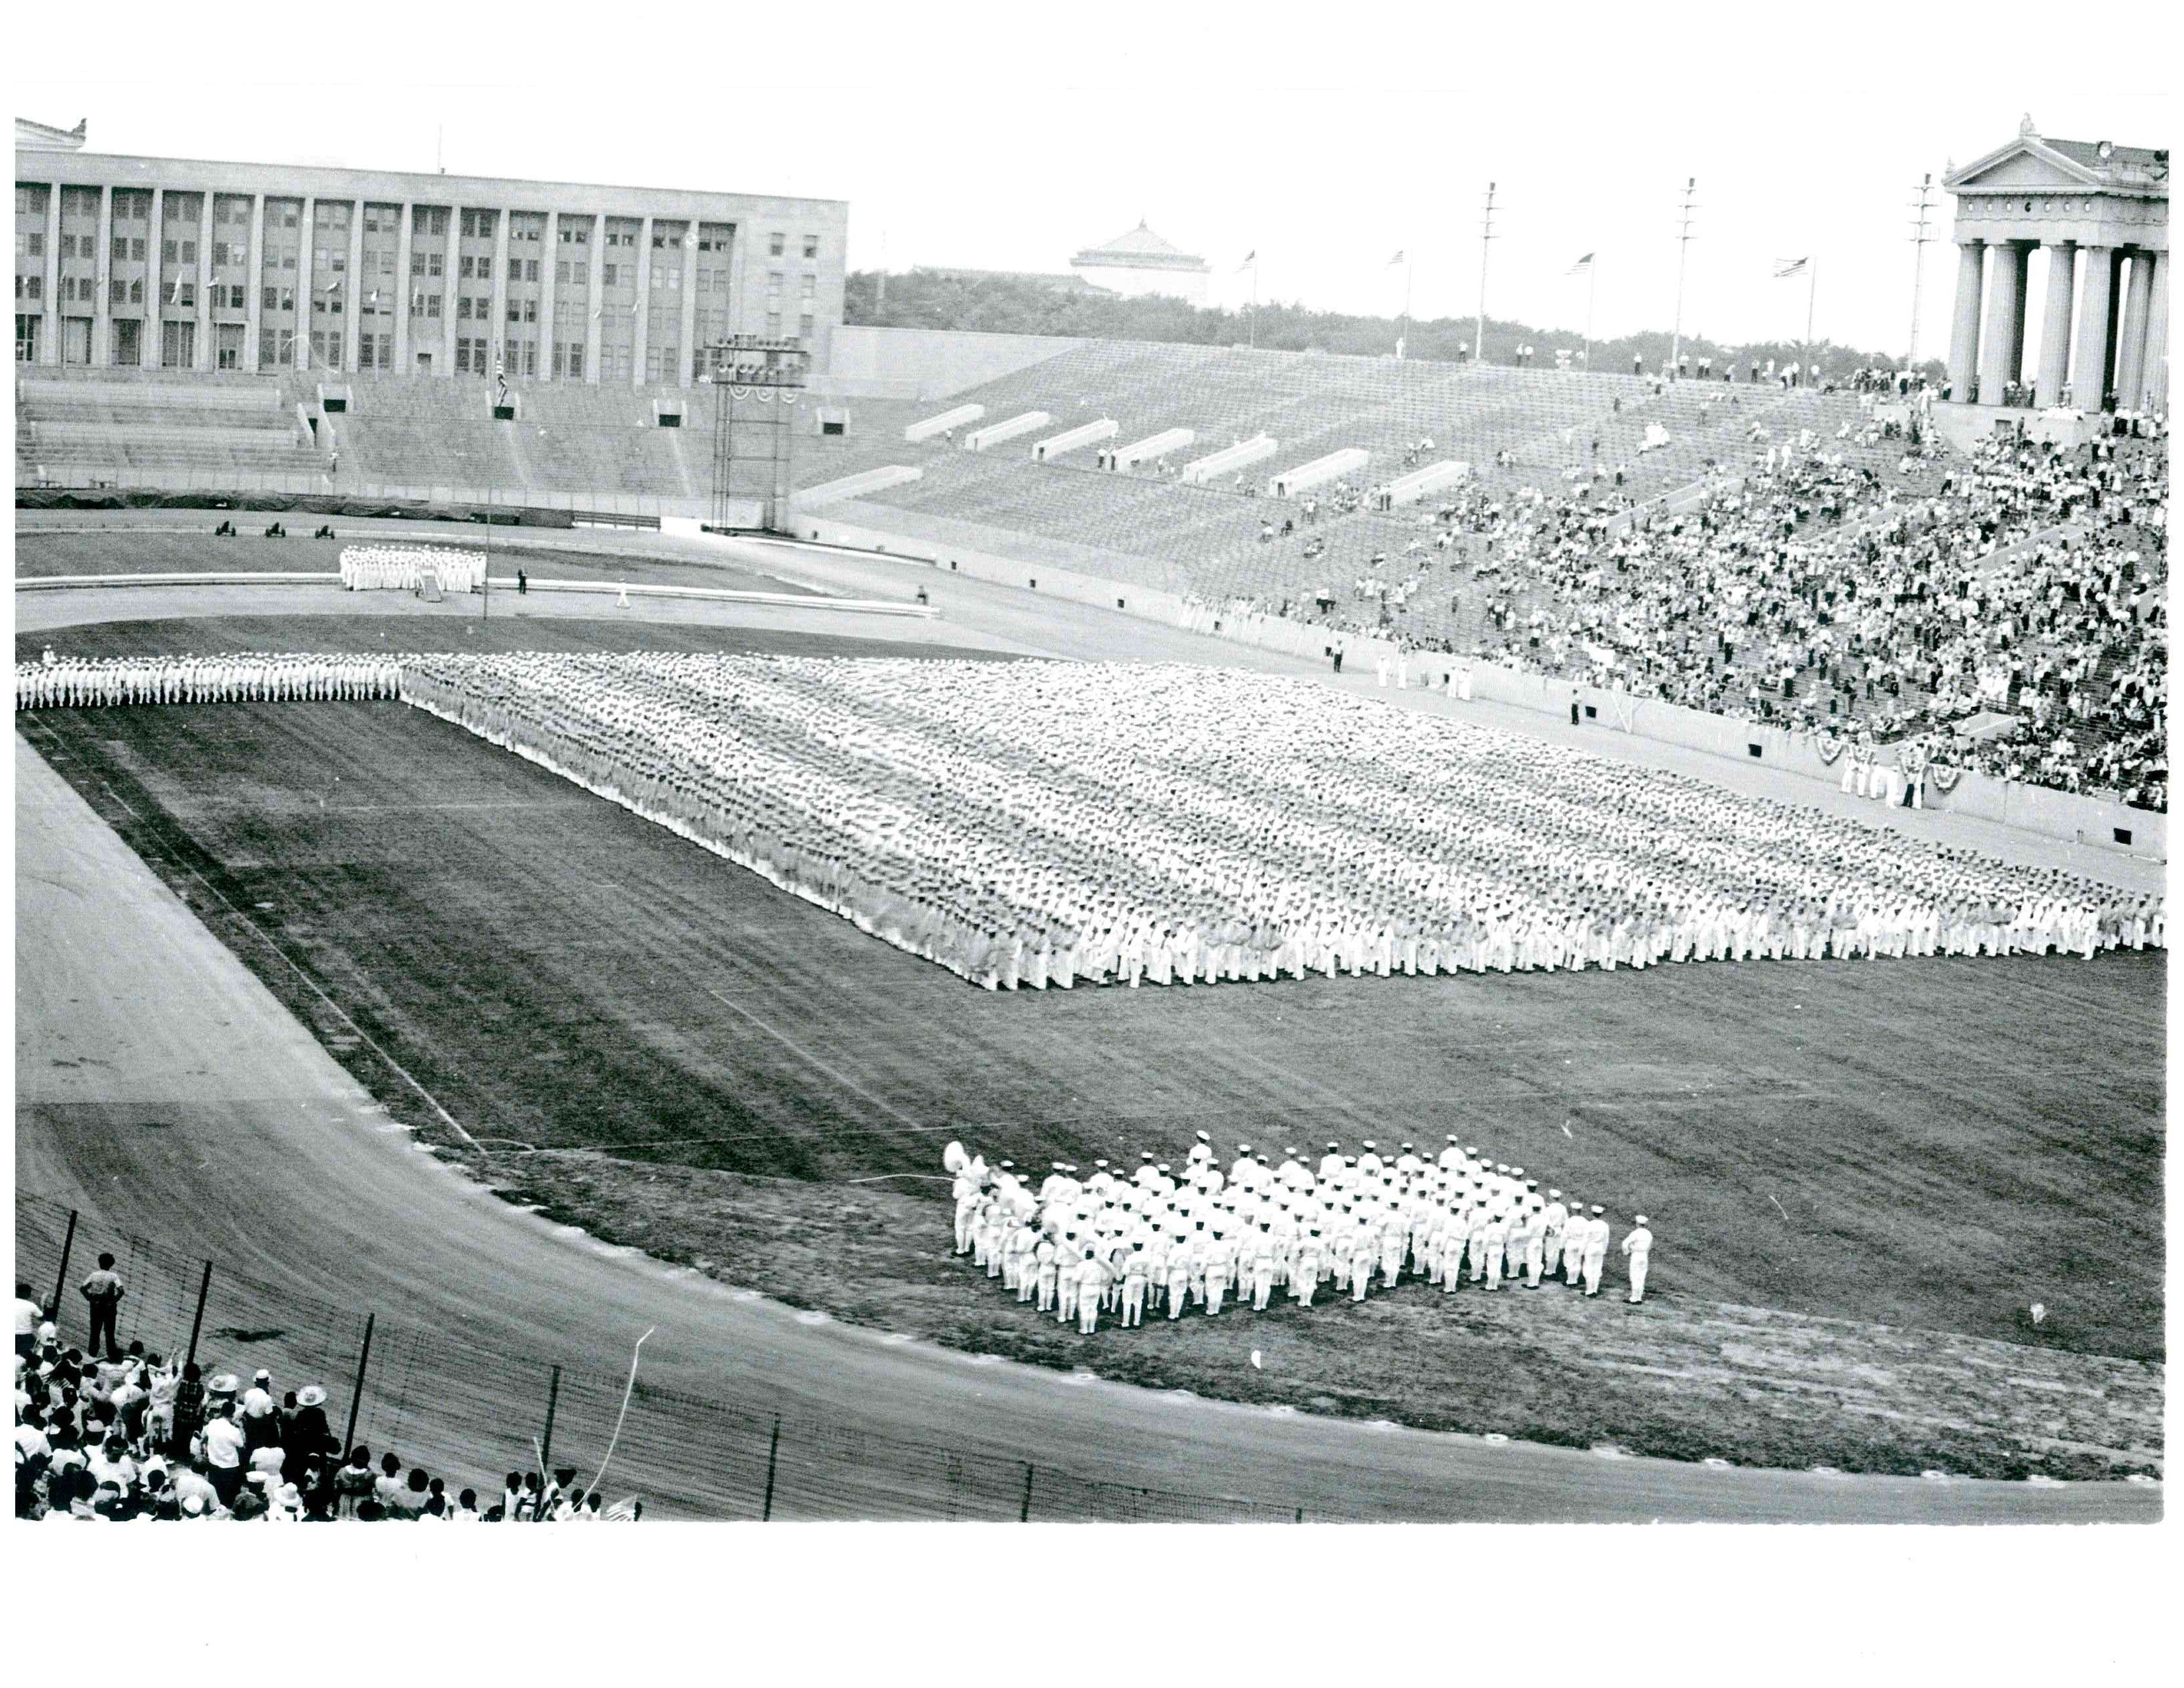 Soldier Field, Chicago, Illinois, July 8, 1967